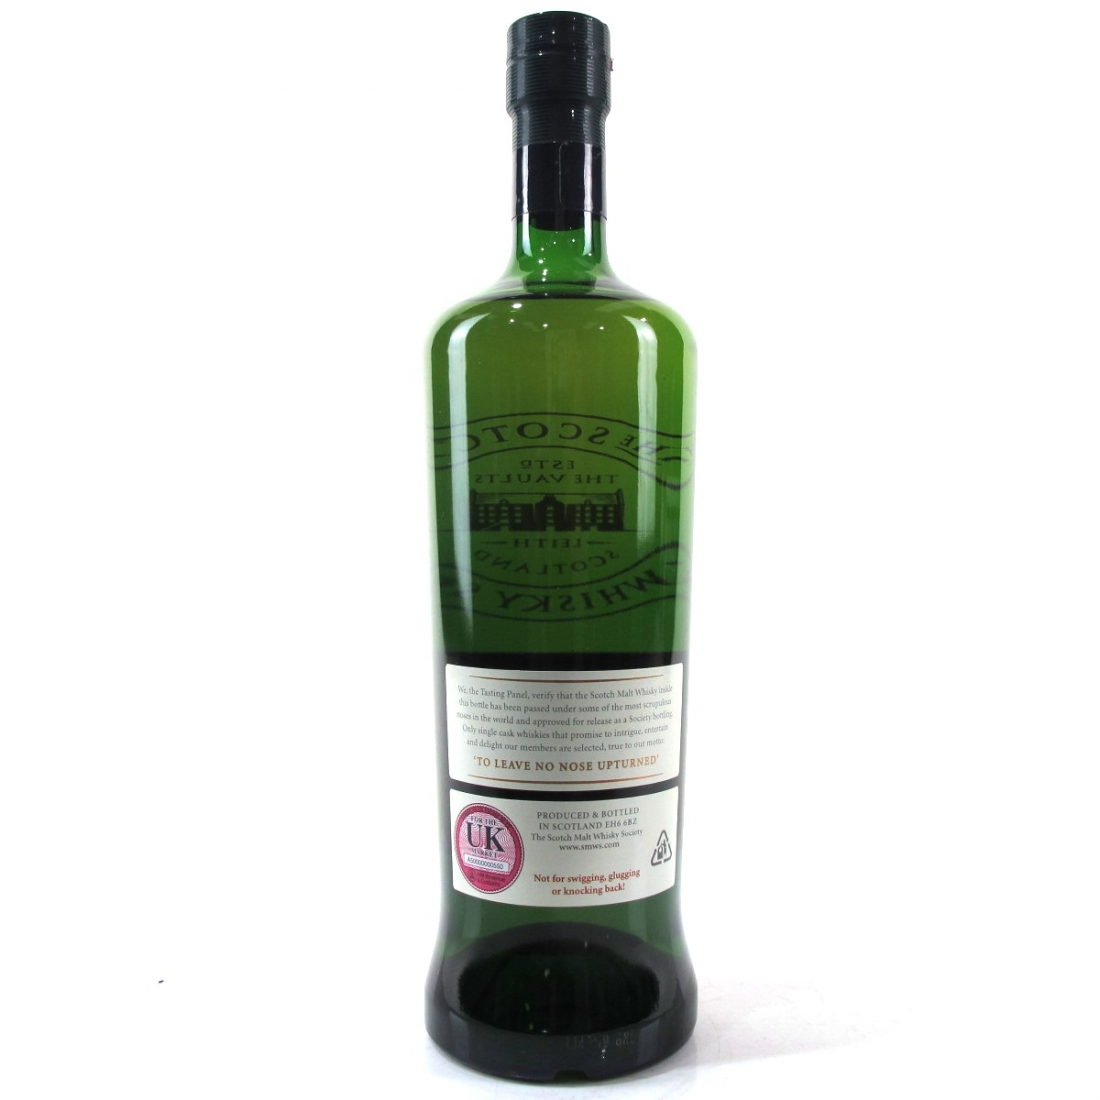 Bowmore SMWS 13 Year Old 3.222 / 2014 Celebration